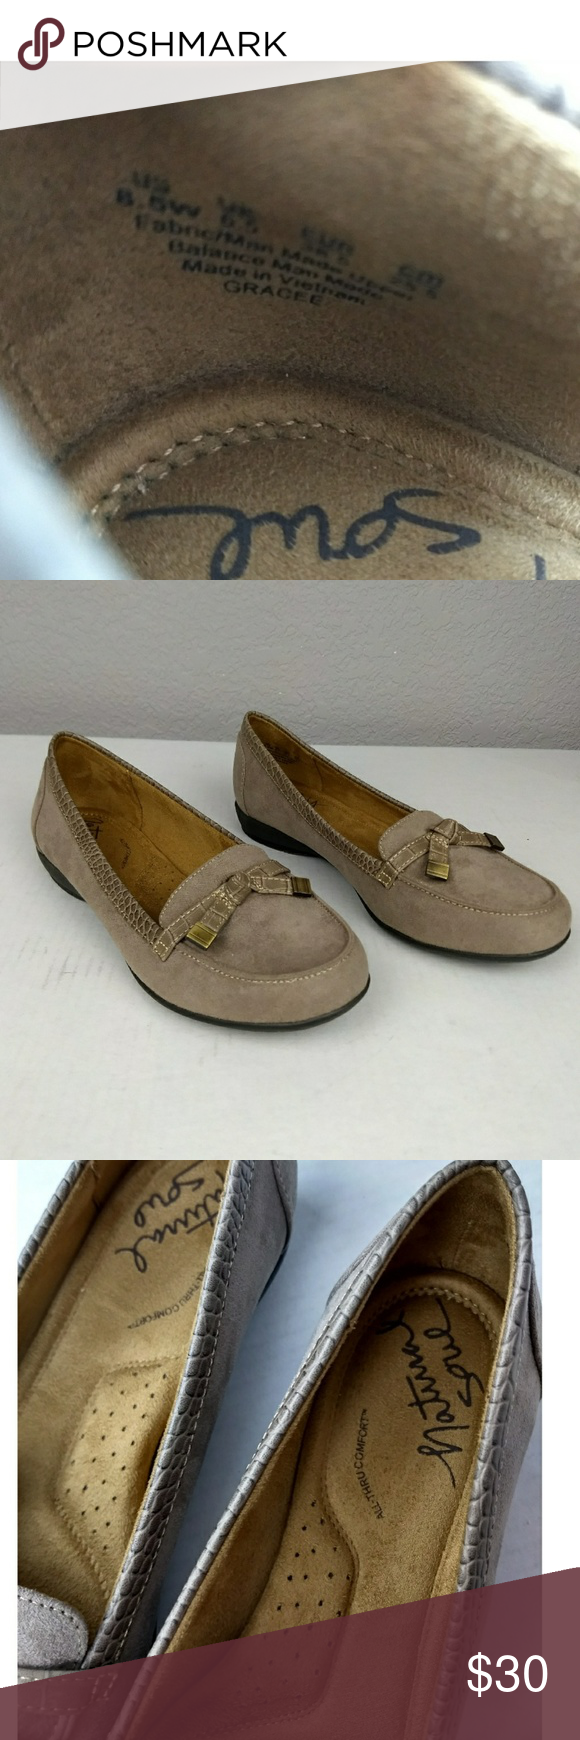 dddb0ee87e8 Natural Soul Gracee Loafers Size 8.5